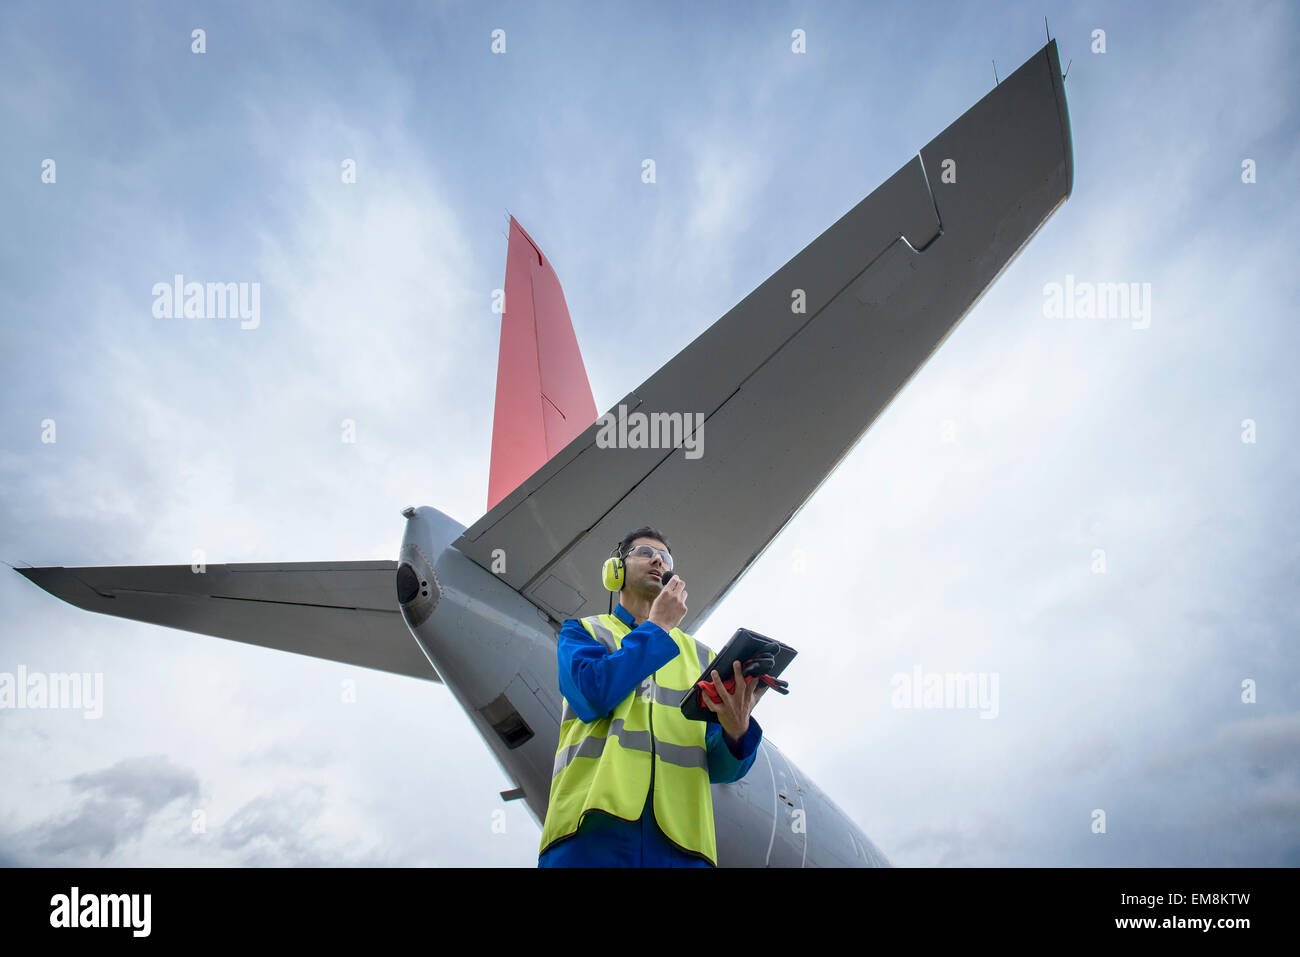 Airside engineer talking on radio near aircraft on runway, low angle view - Stock Image